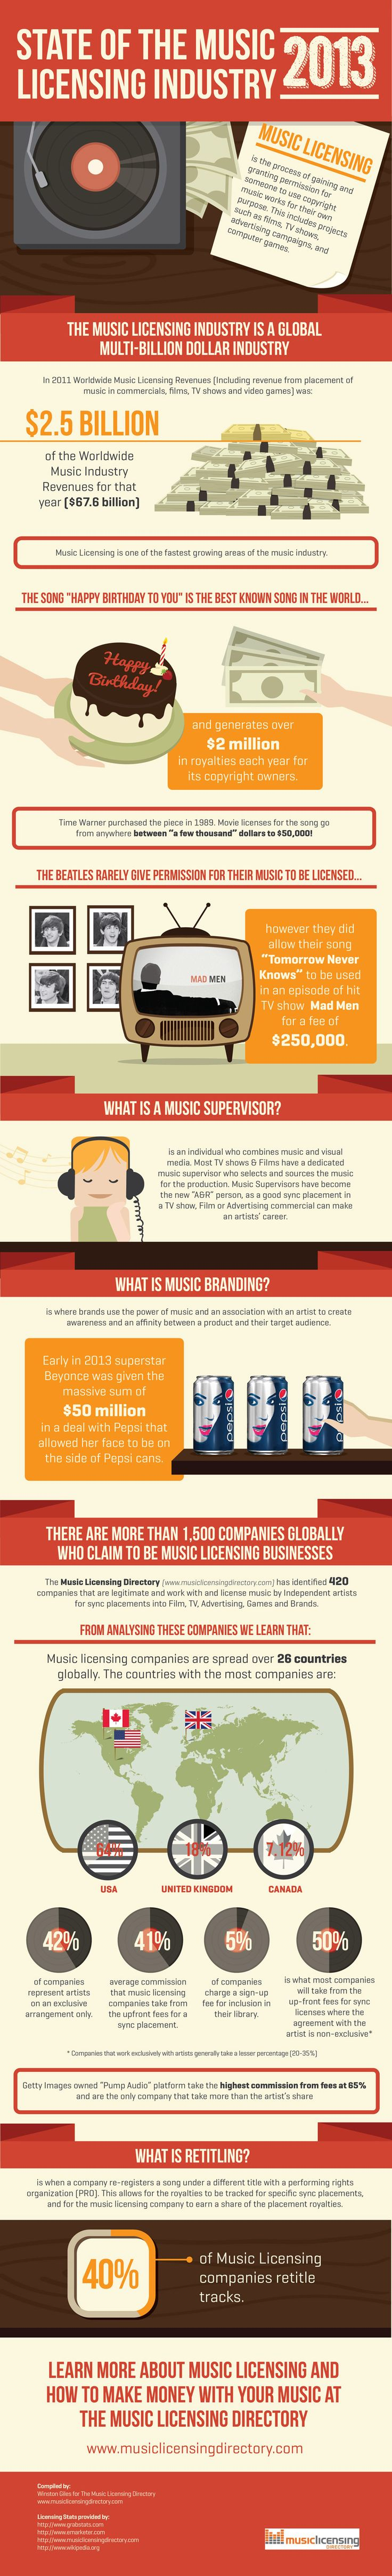 Who Knew?? Seems to be very few companies which control the music industry. Can anyone license music?